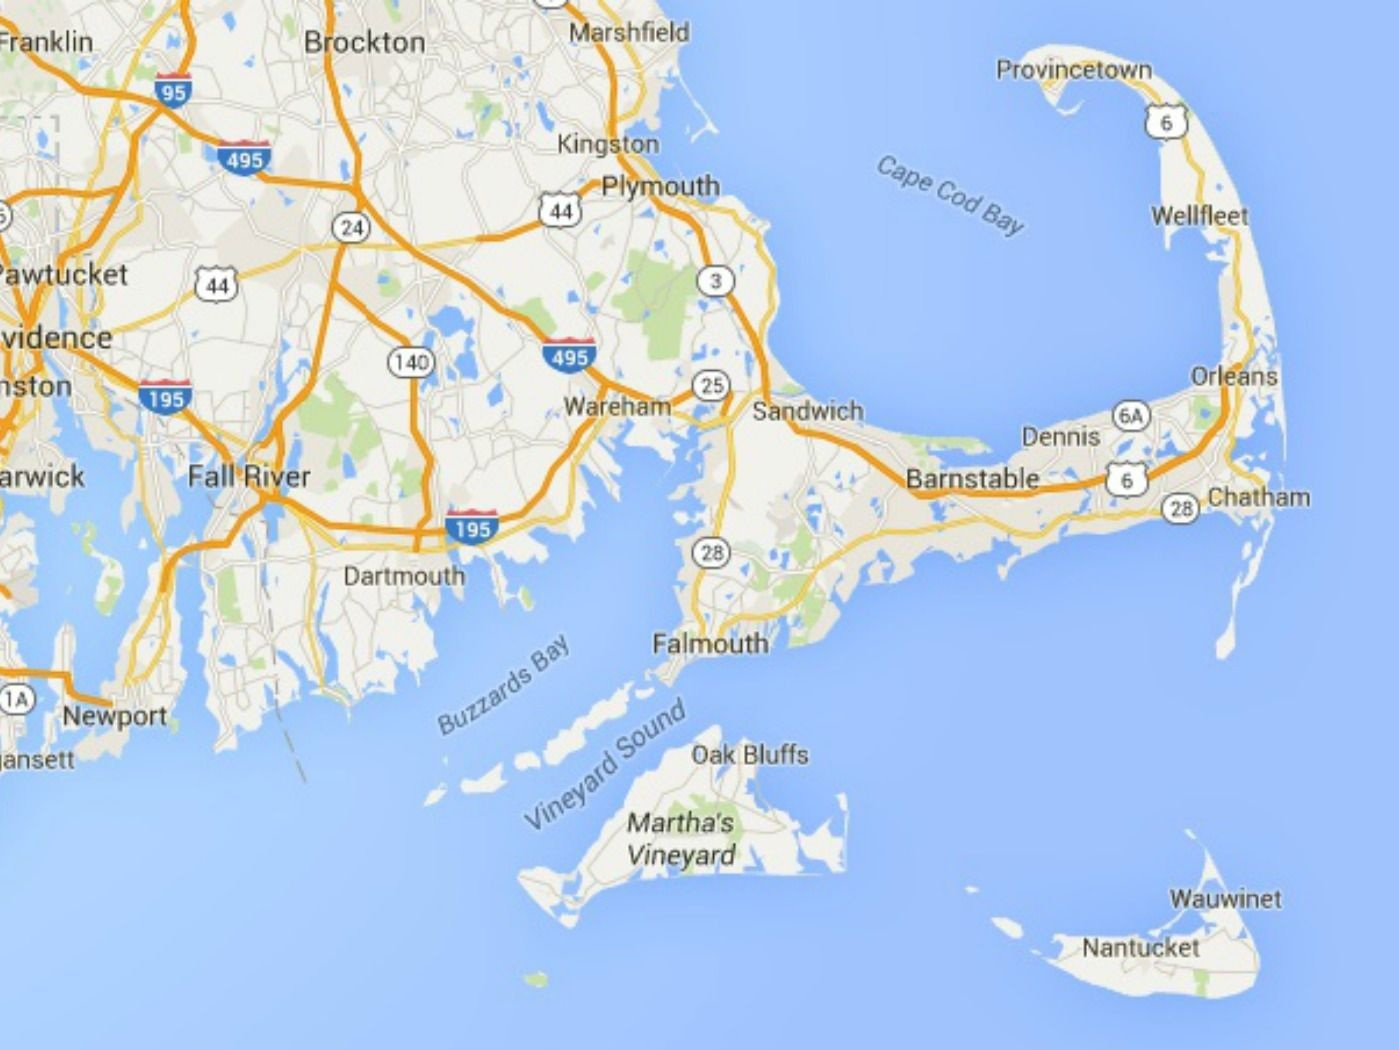 Bayside Tent services all of the Cape, South Shore, and Southeastern, Massachusetts. Our proximity to the Mid-Cape Highway, Route 3 and Route 495 ensures prompt service.